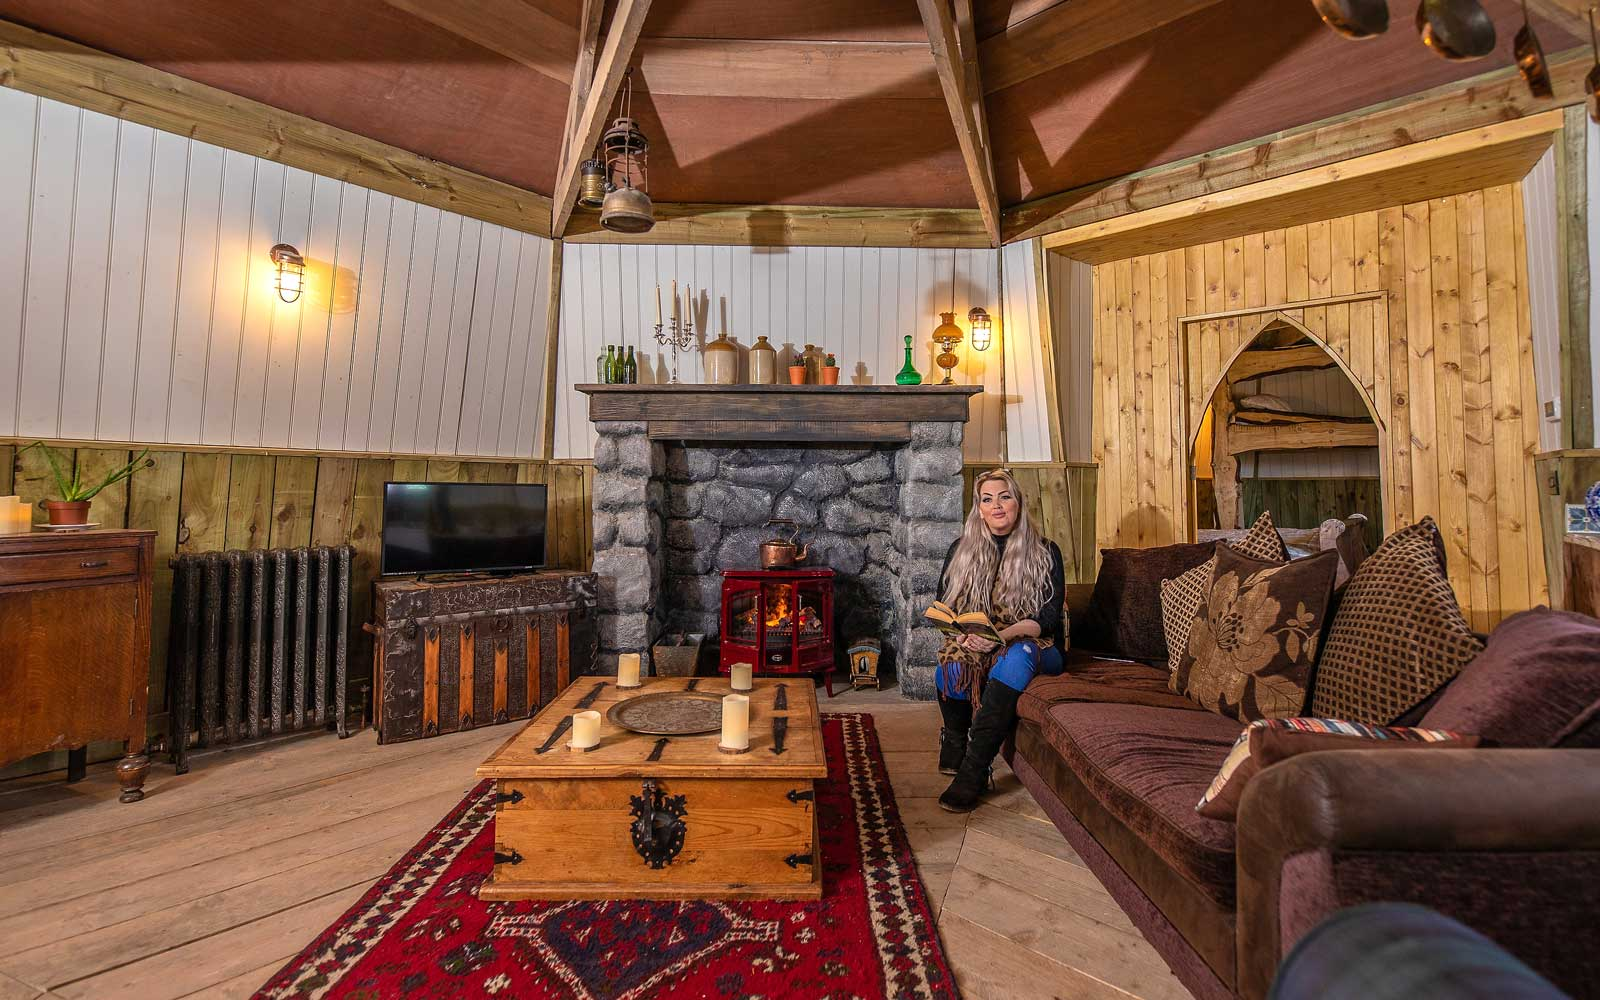 Picture Shows Living Area Holiday home inspired by Harry PotterÕs HagridÕs Hut opens on the North York Moors Harry Potter fans can now rent a holiday cottage inspired by the fictional home of one of the booksÕ main characters, Rubeus Hagrid. The GroundkeeperÕs Cottage has just opened at North Shire near Saltburn on the edge of the North York Moors National Park, inspired by the film portrayal of HagridÕs Hut in the Harry Potter novels. The opening comes just ahead of International Harry Potter Day (2 May). The cottage comprises three interlocking circular slate-roofed buildings, two with turrets, and all with stained glass windows. Guests approach the lantern-lit wooden door before stepping into the spacious open plan living space comprising galley kitchen, dining area, seating in front of a feature fireplace and wood beams festooned with Hagrid-style paraphernalia such as old baskets, ropes, leather bags and lanterns. From the living room one door leads to the circular bedroom complete with double bed and a rustic wooden bunk bed, while a second door opens onto a large bathroom where the star feature is a huge freestanding copper bath. The owner Carol Cavendish, who has been a Harry Potter fan since her early 20s, has also incorporated small touches such as an ink bottle and quill and bespoke copper basin in the bathroom. However whereas Hagrid would have lived relatively frugally, guests staying in GroundkeeperÕs cottage wonÕt have to skimp on lifeÕs luxuries as two comfy sofas in the living room together with sleigh bed and high quality mattresses on the bunk bed make it more of a cosy, comfortable retreat. The cottage, which is available for rent from £195 per night, sleeps up to six (four in the bedroom and two on a sofabed). For those who want to bring their own Fang, one well-behaved dog is also allowed at a small extra cost. This is the next stage in North ShireÕs vision to create a storybook fantasy world for guests. Back i